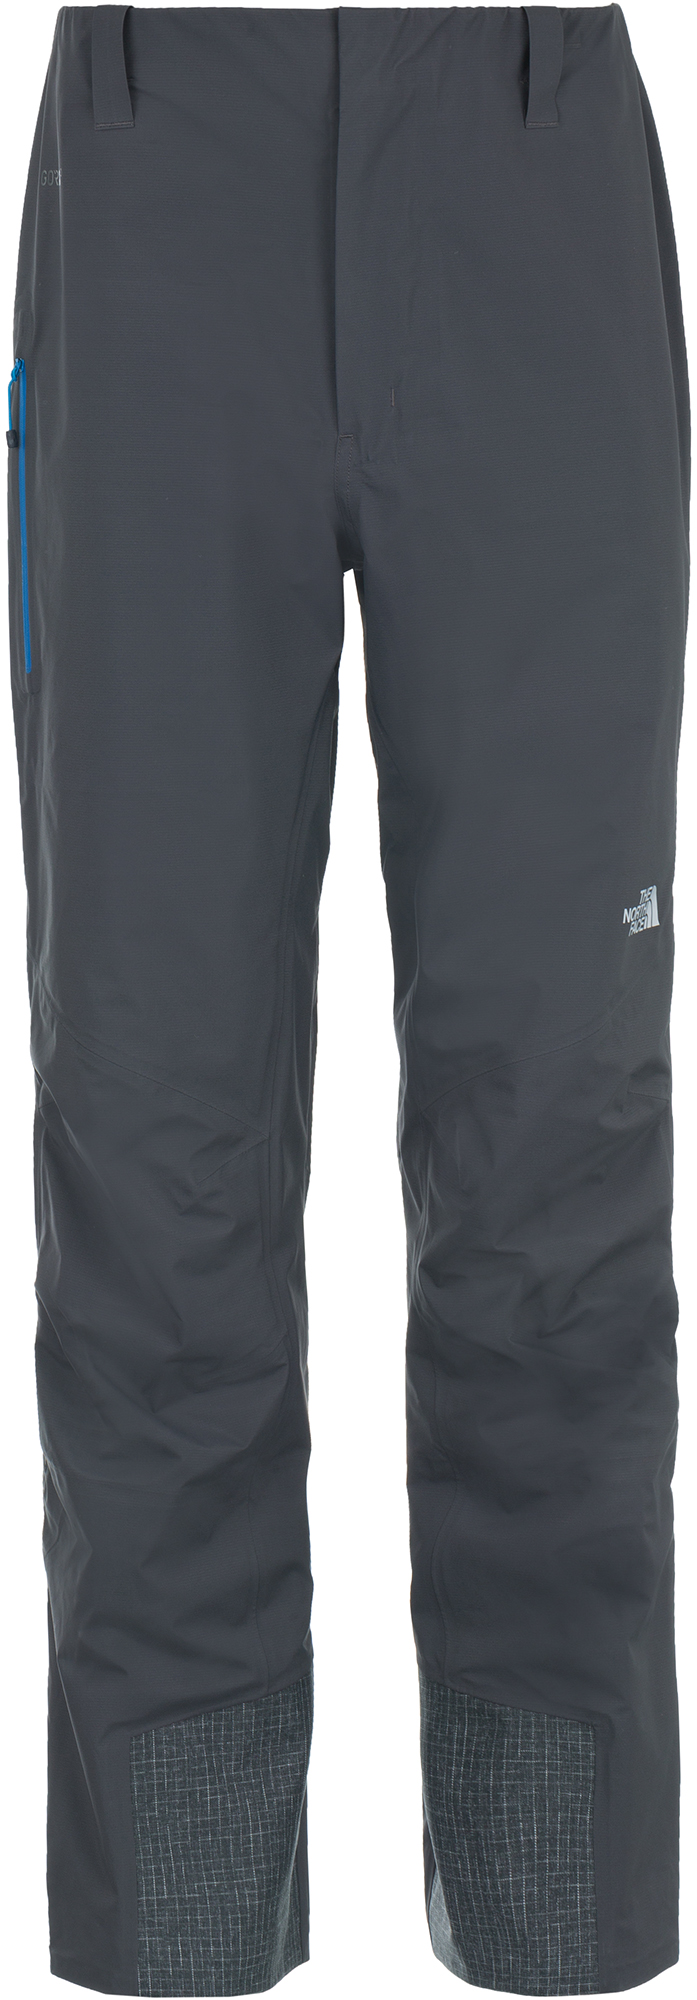 The North Face Брюки мужские The North Face Shinpuru the north face бермуды